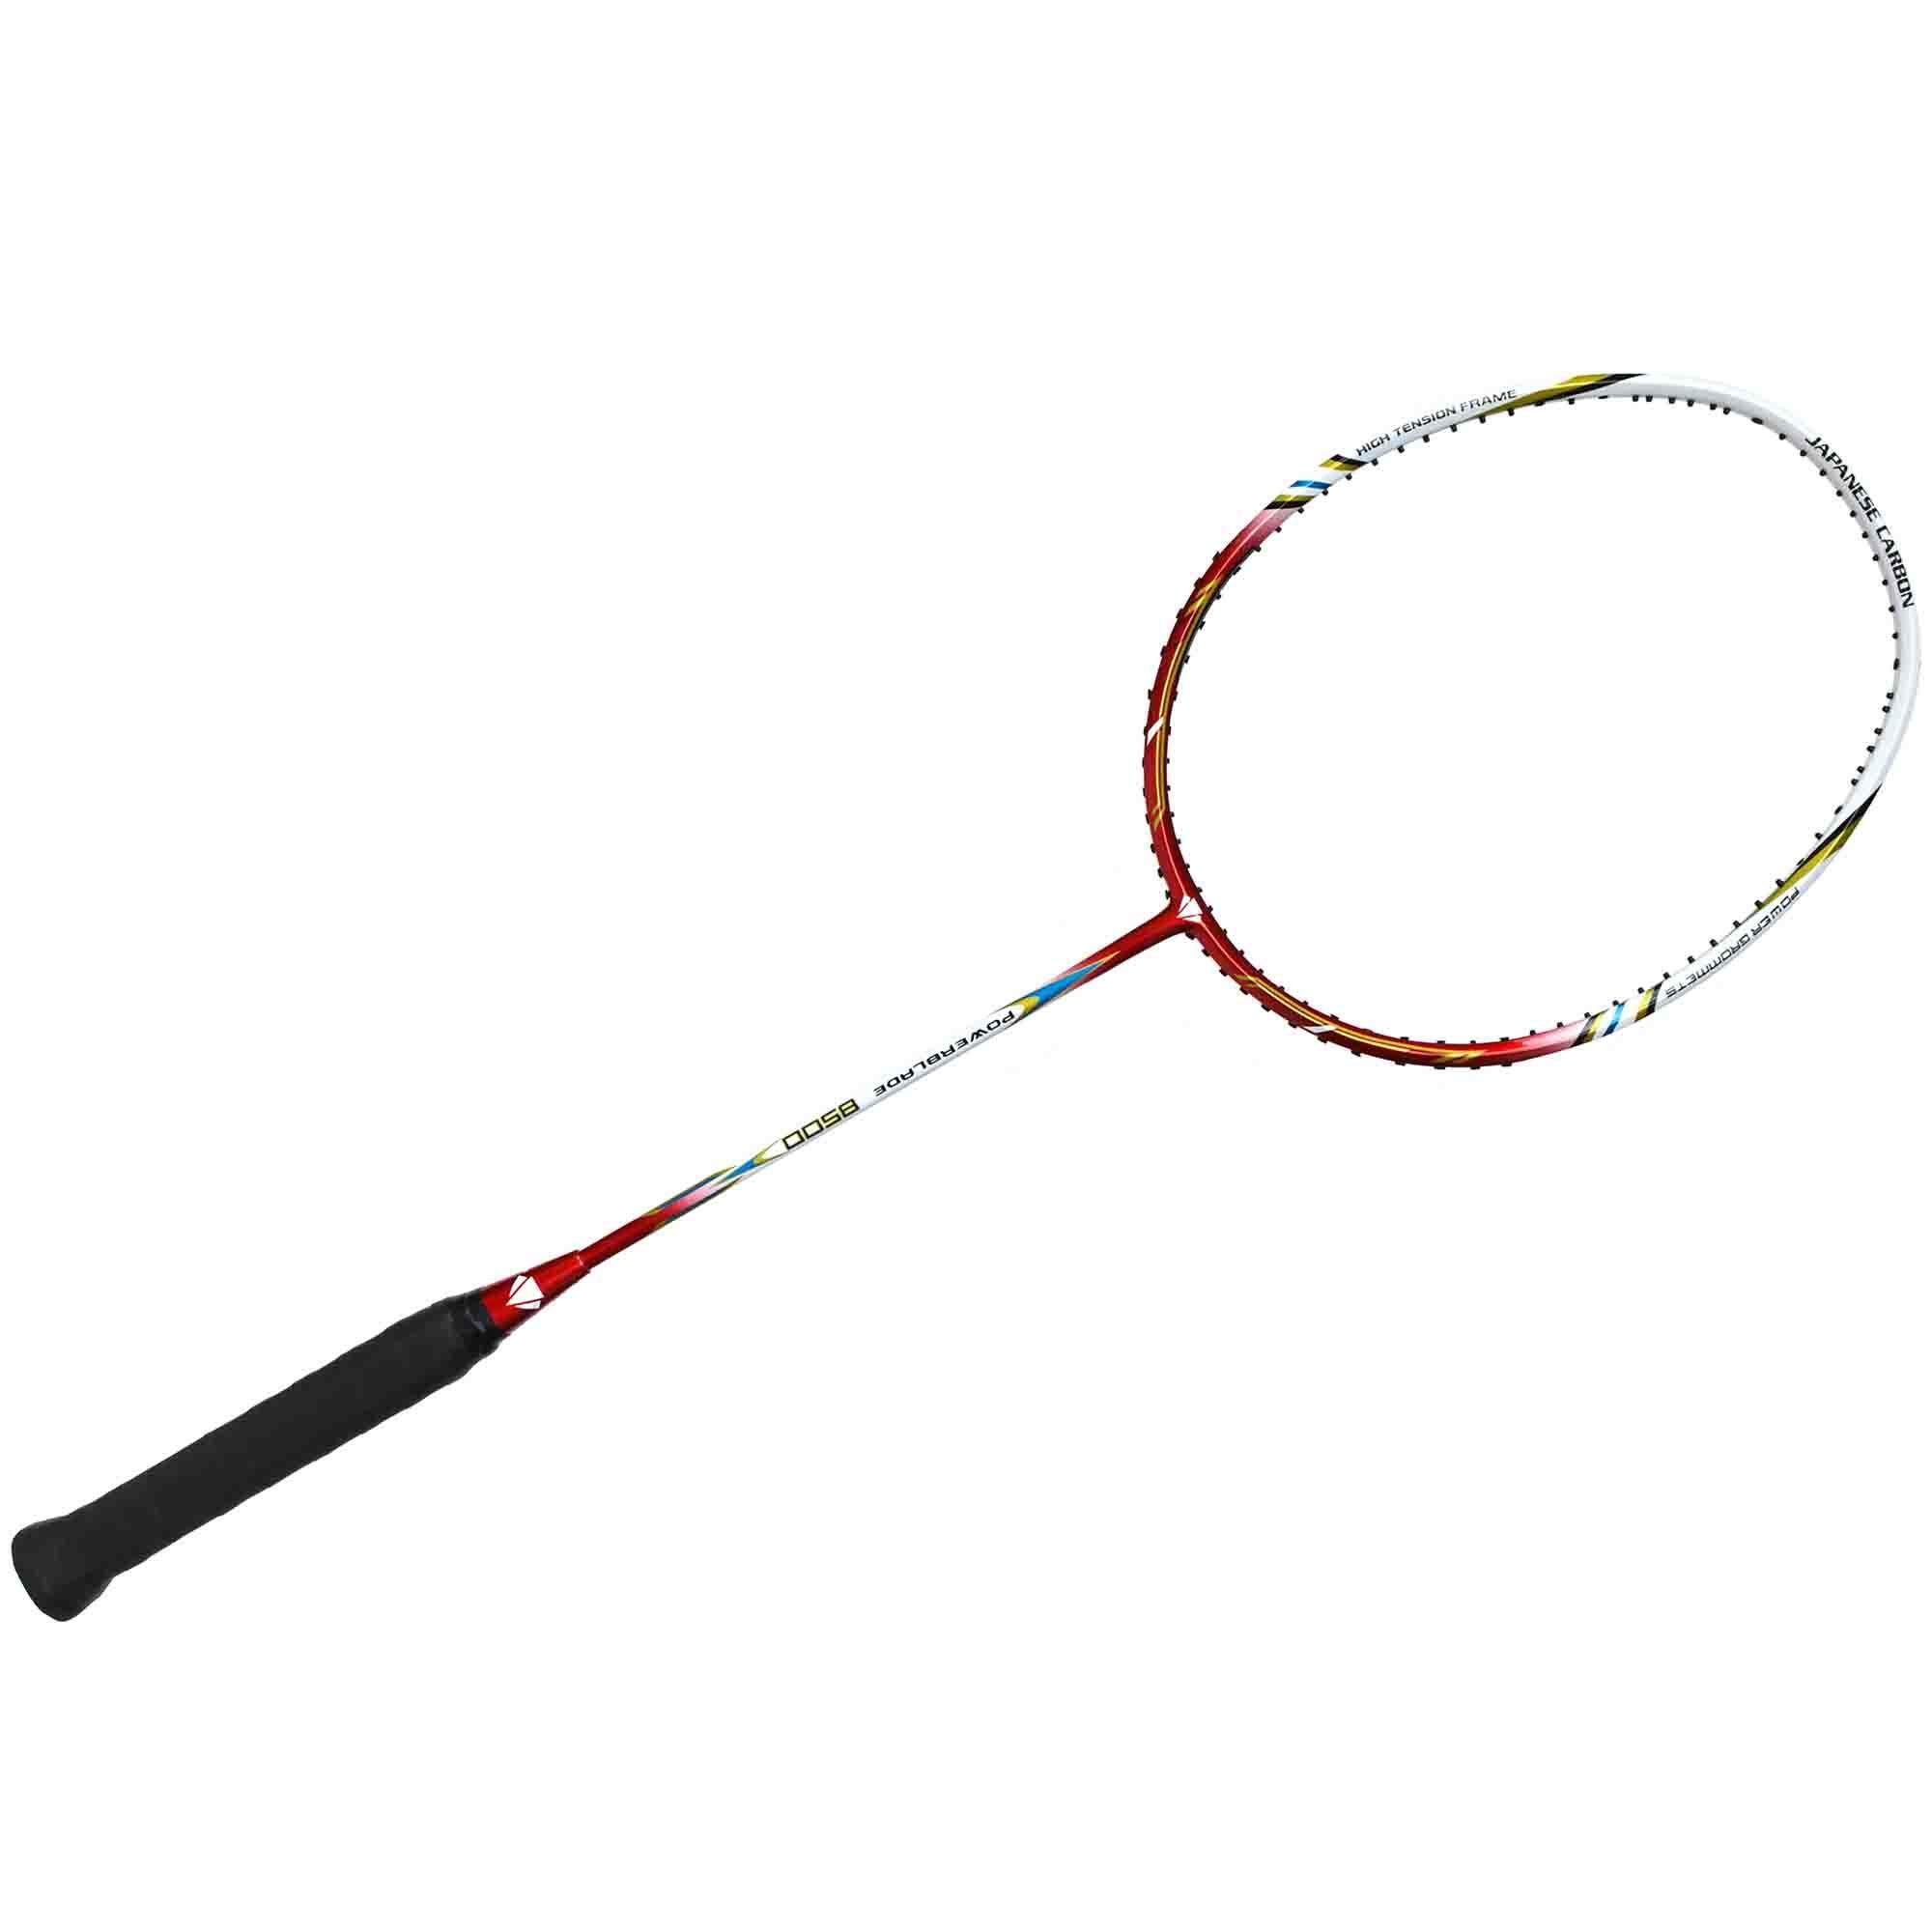 Carlton PowerBlade 8500 Badminton Racket